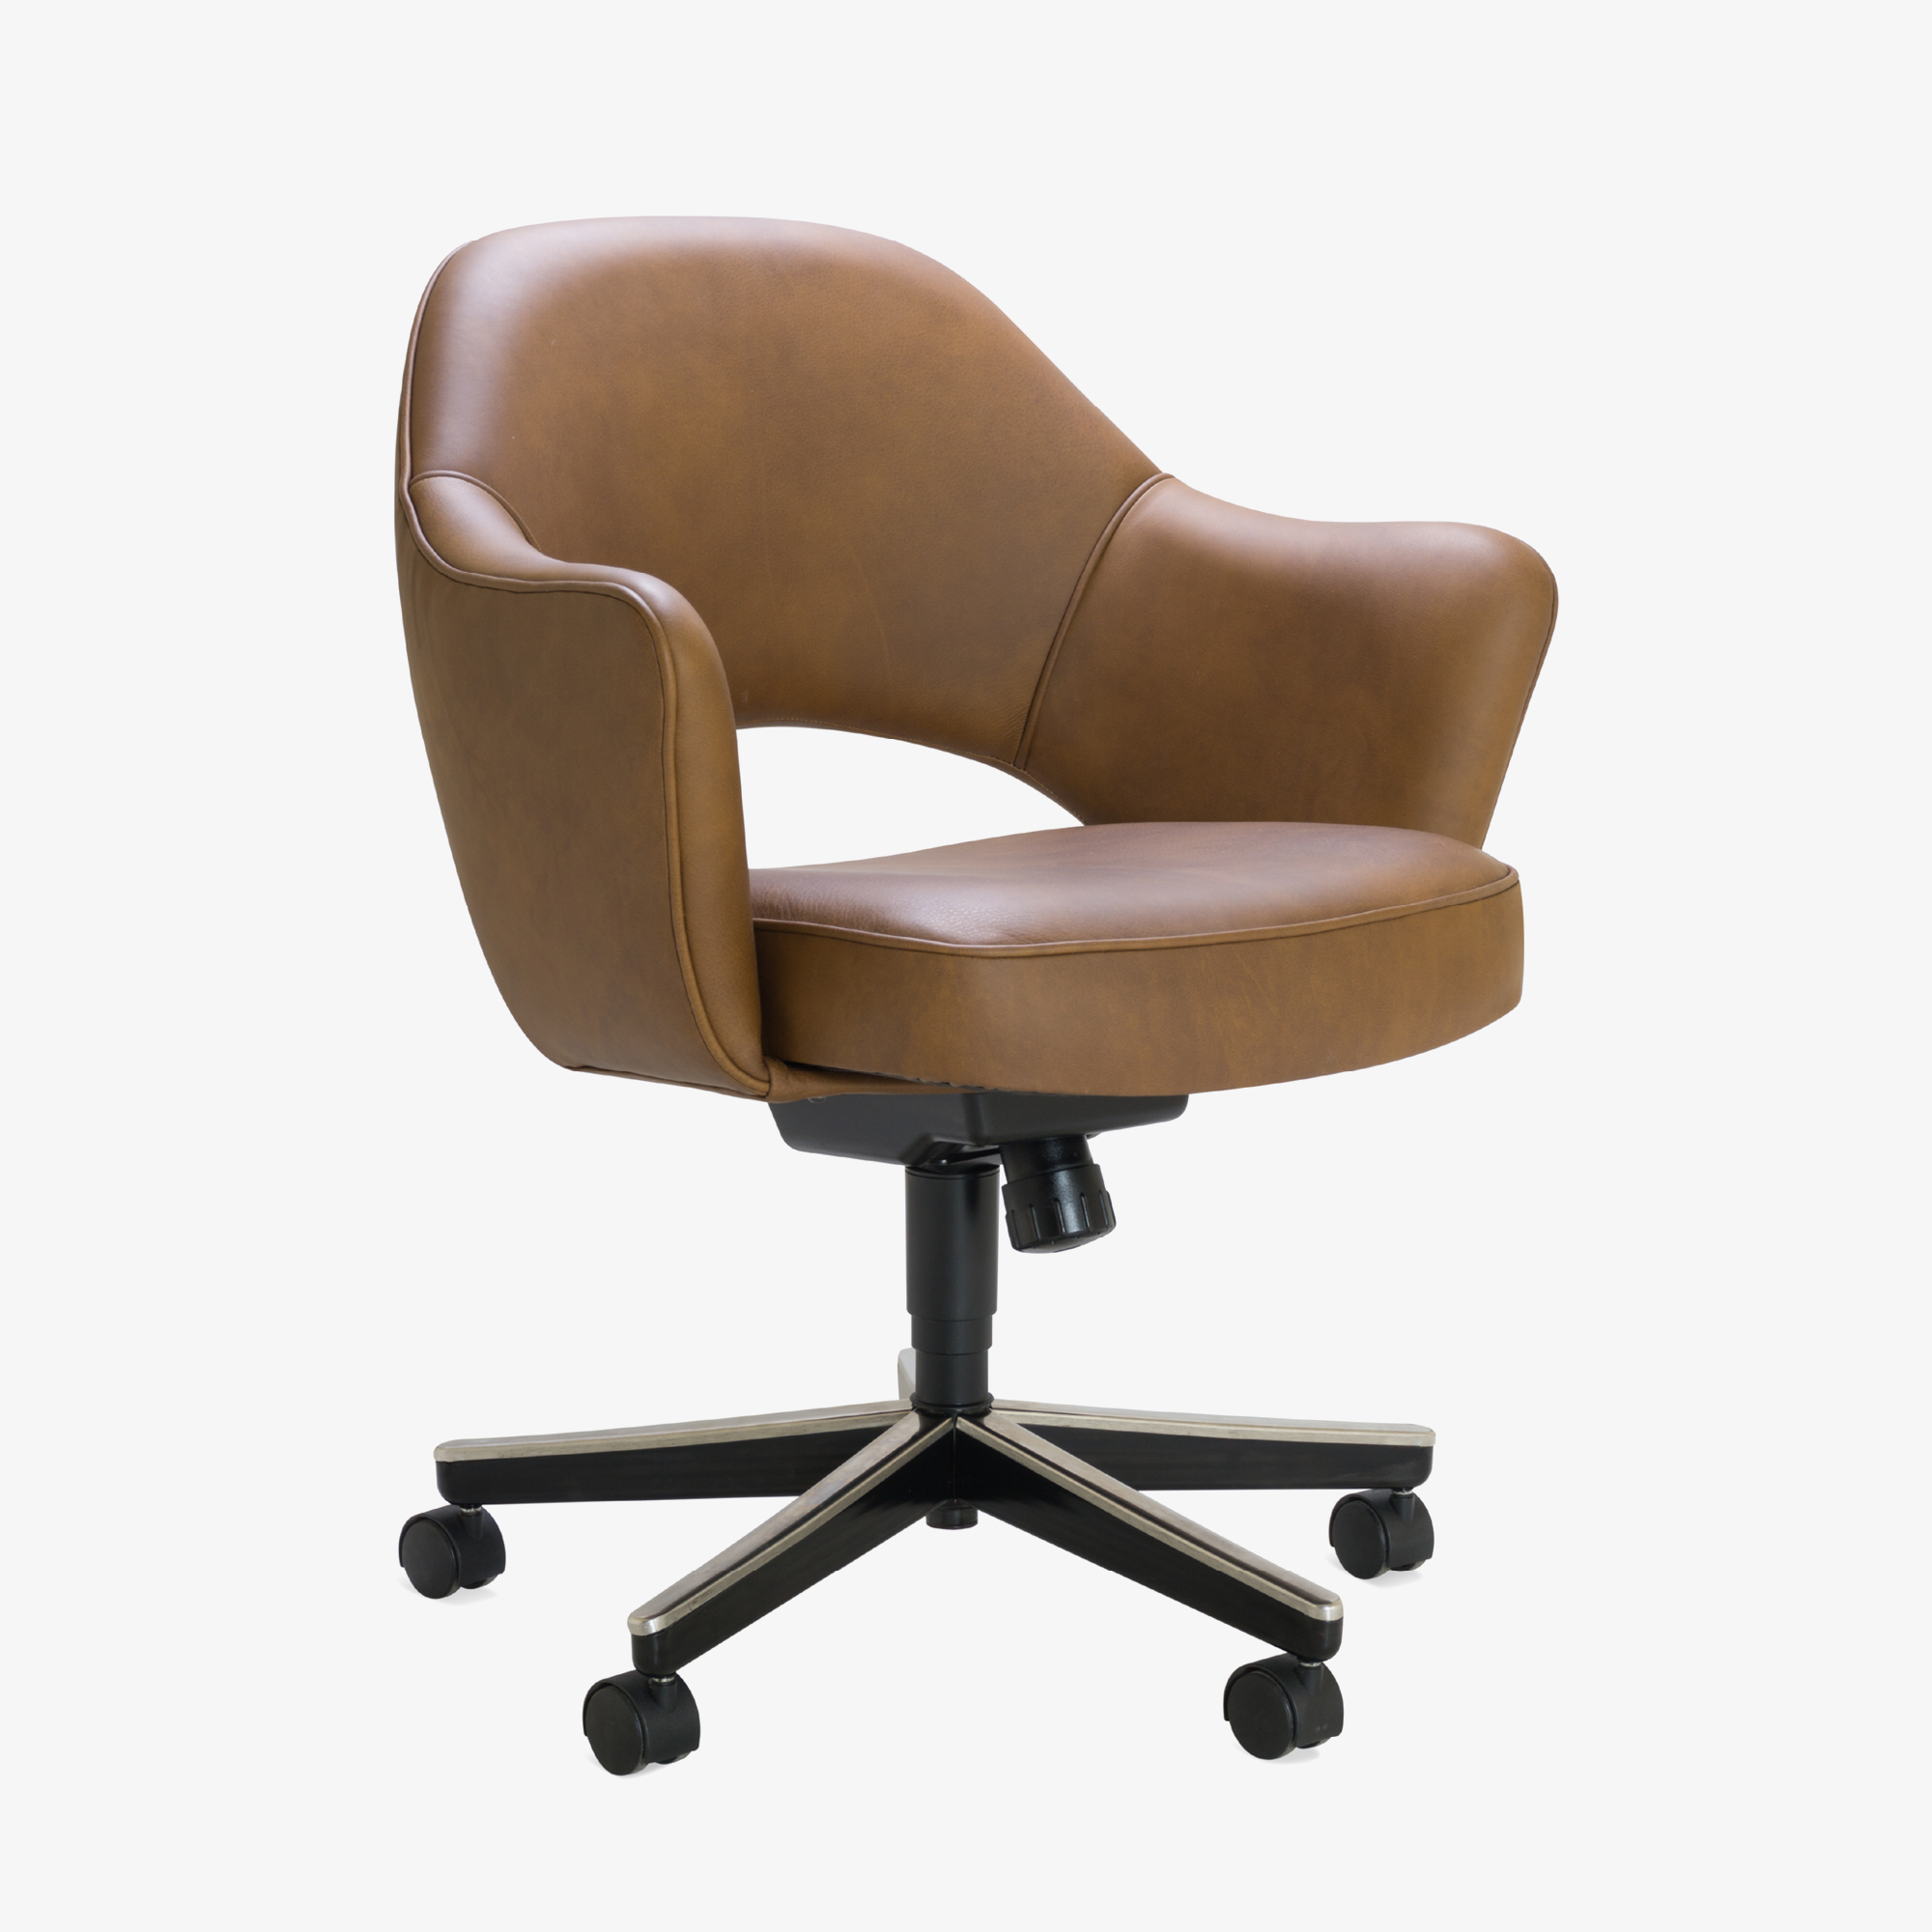 Saarinen Executive Arm Chair in Saddle Leather, Swivel Base2.png